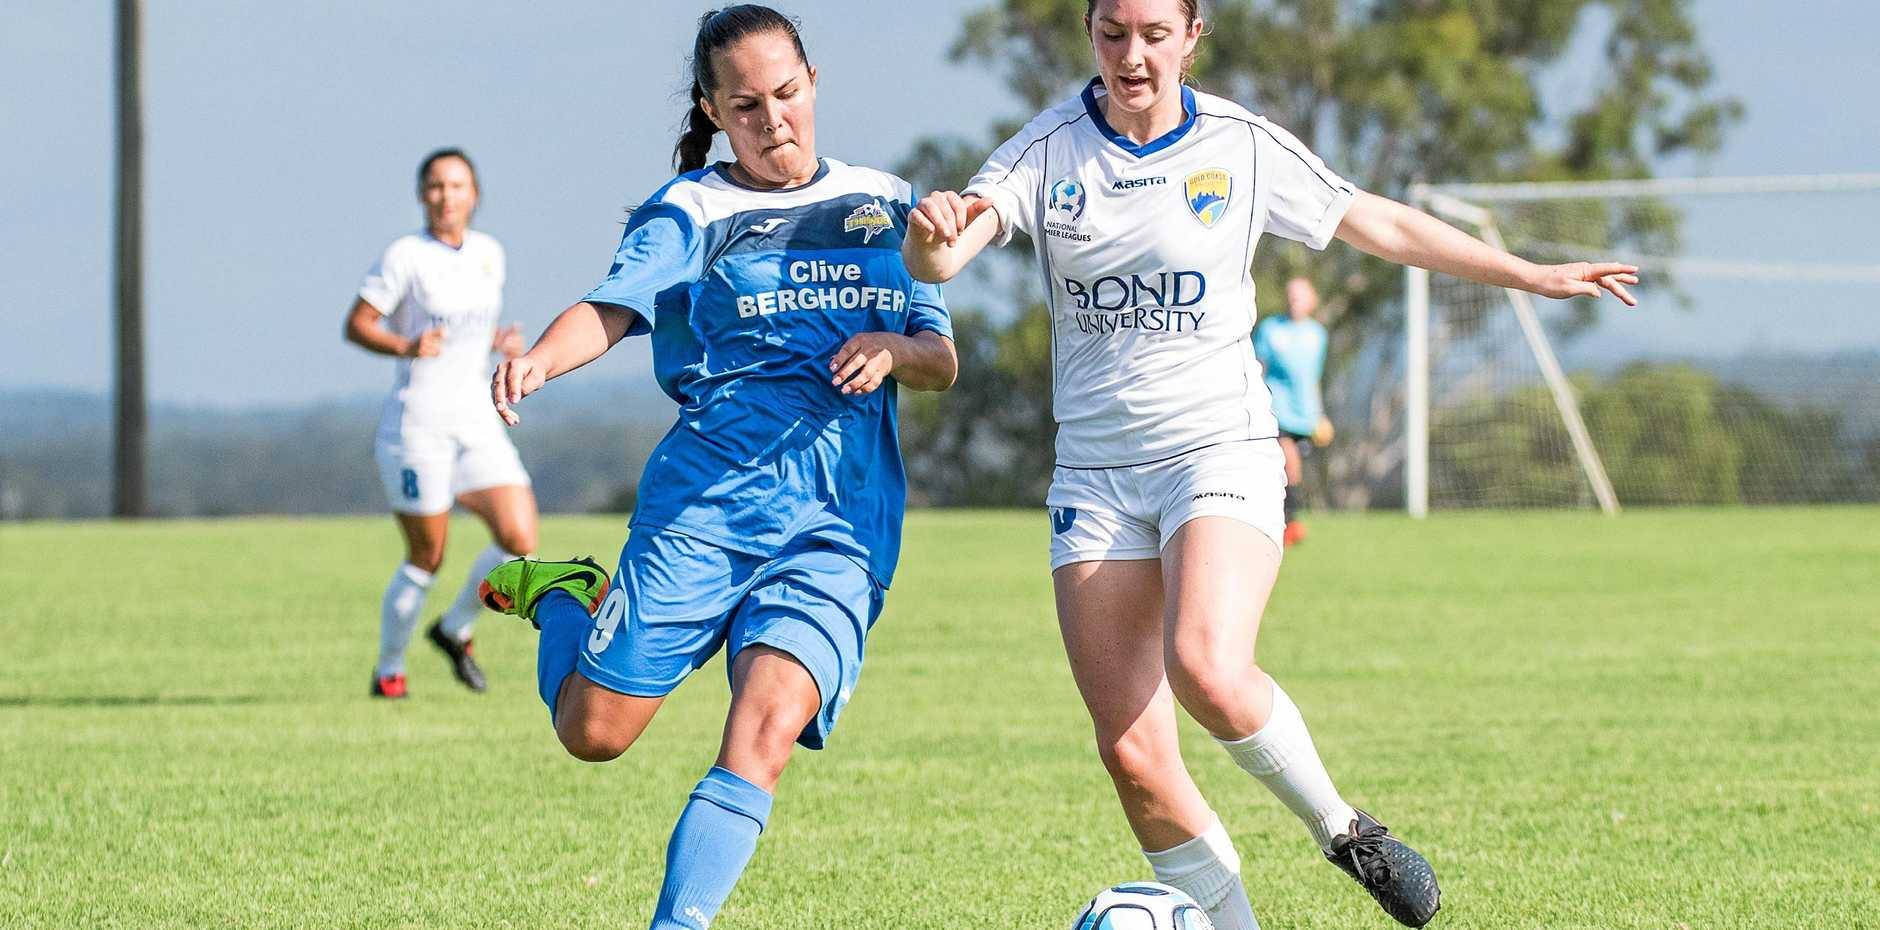 South West Queensland Thunder player Jess Fry (left) battles for possession of the ball.